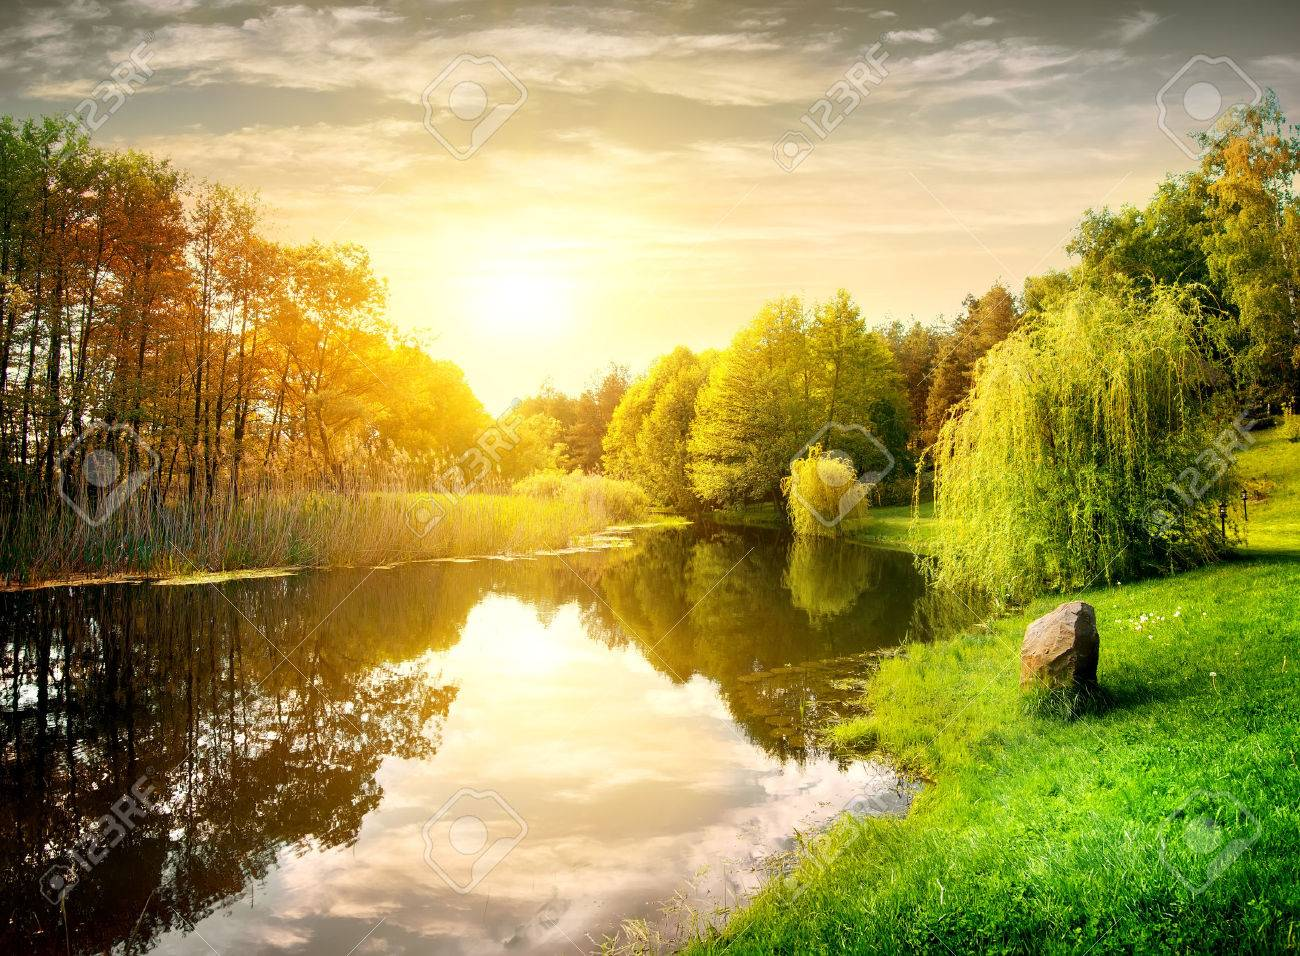 Sunset over calm river in the park Stock Photo - 43674596